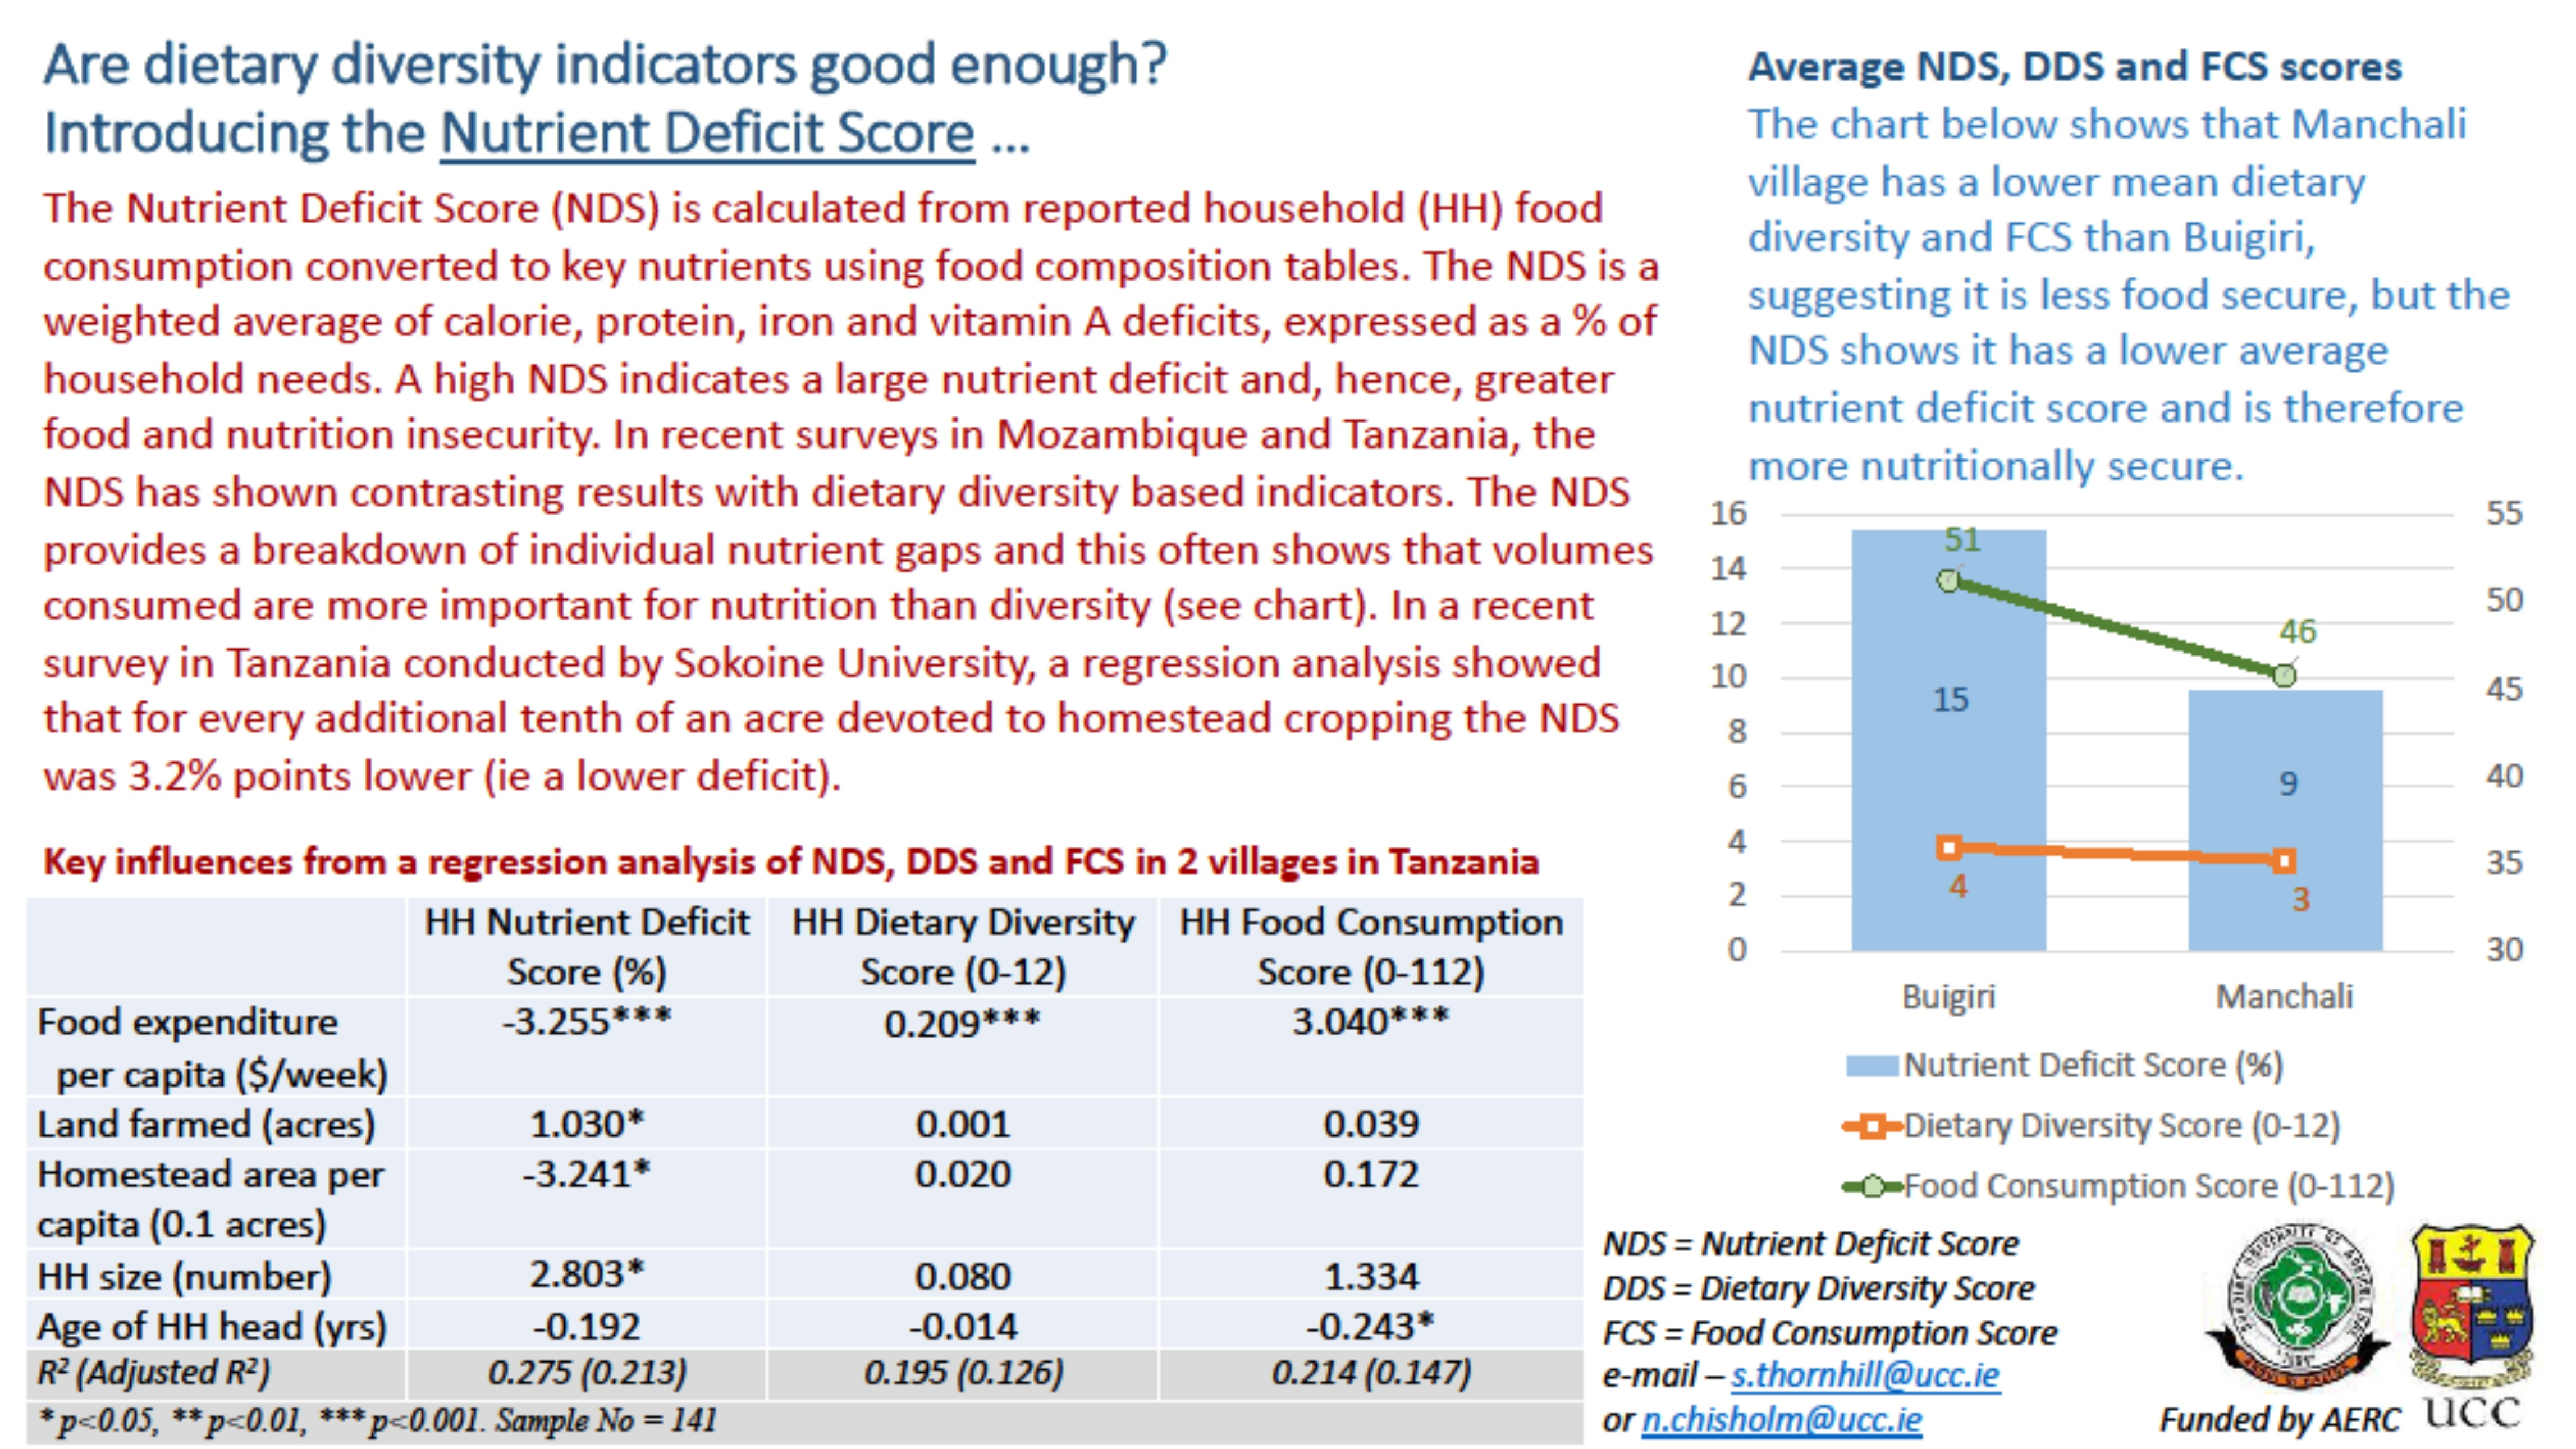 The Nutrient Deficit Score